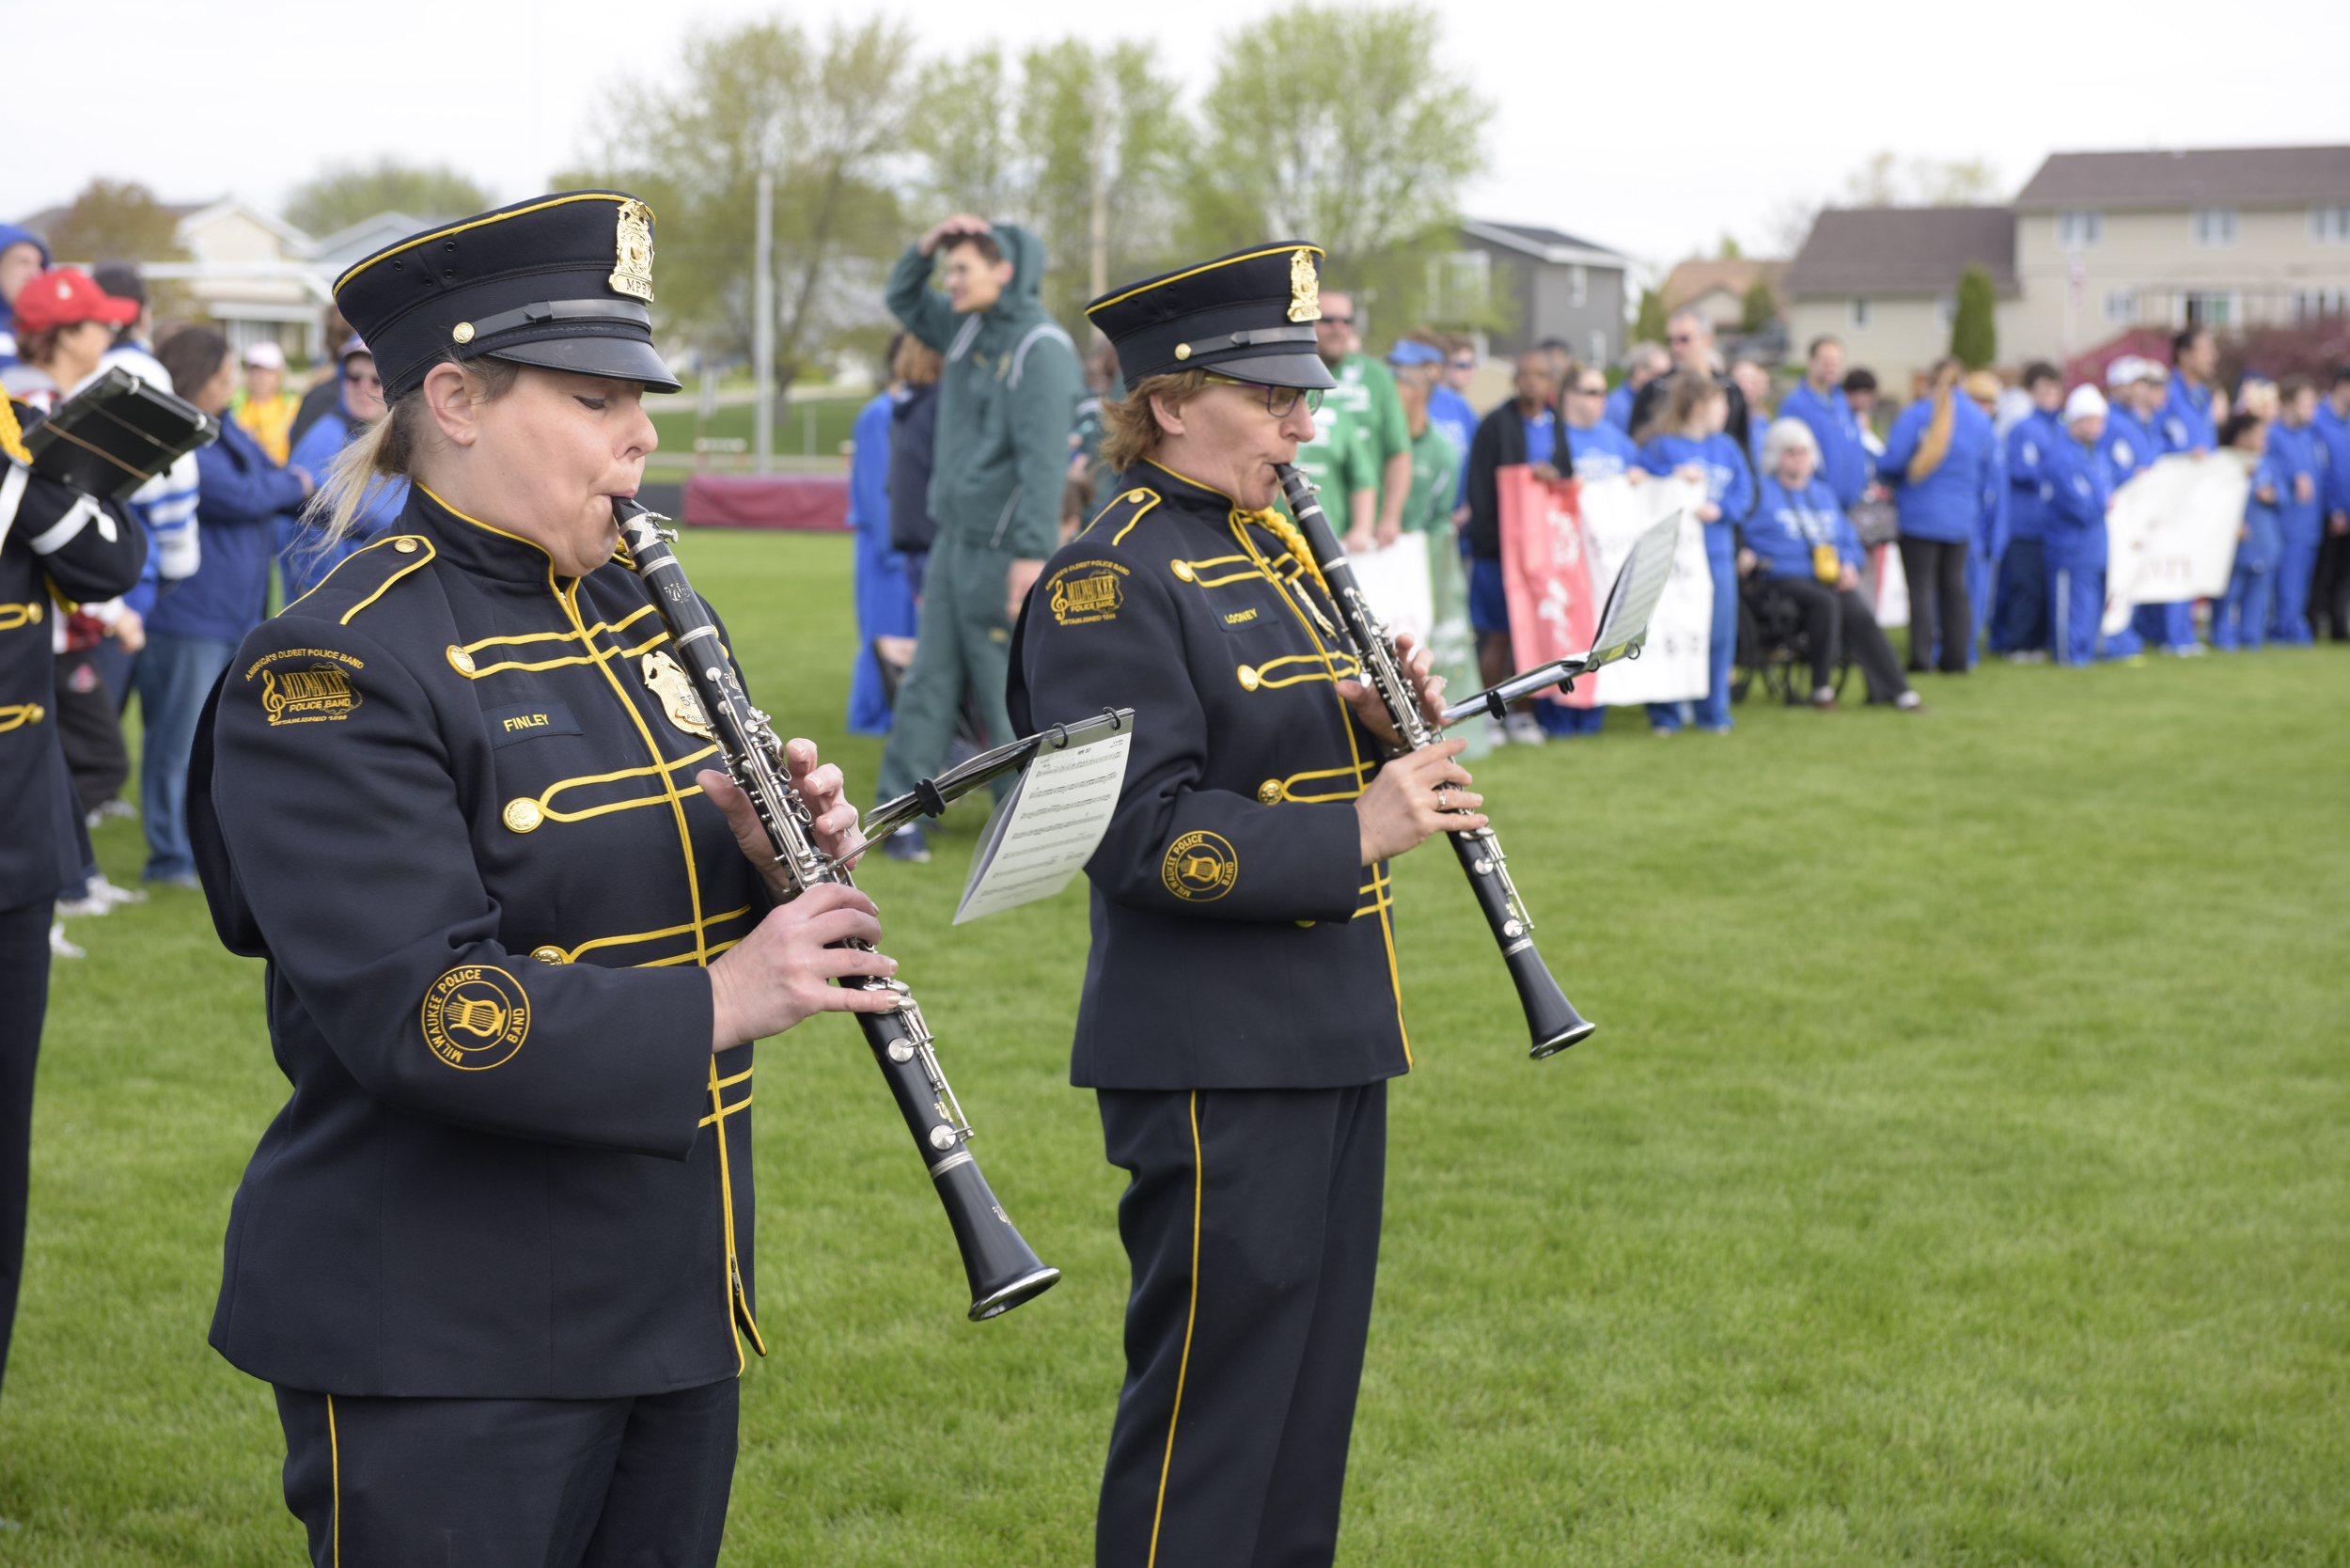 Police band members, Officers Carrie Finley and Pam Looney playing their clarinets. Both officers have been long time members of the band.